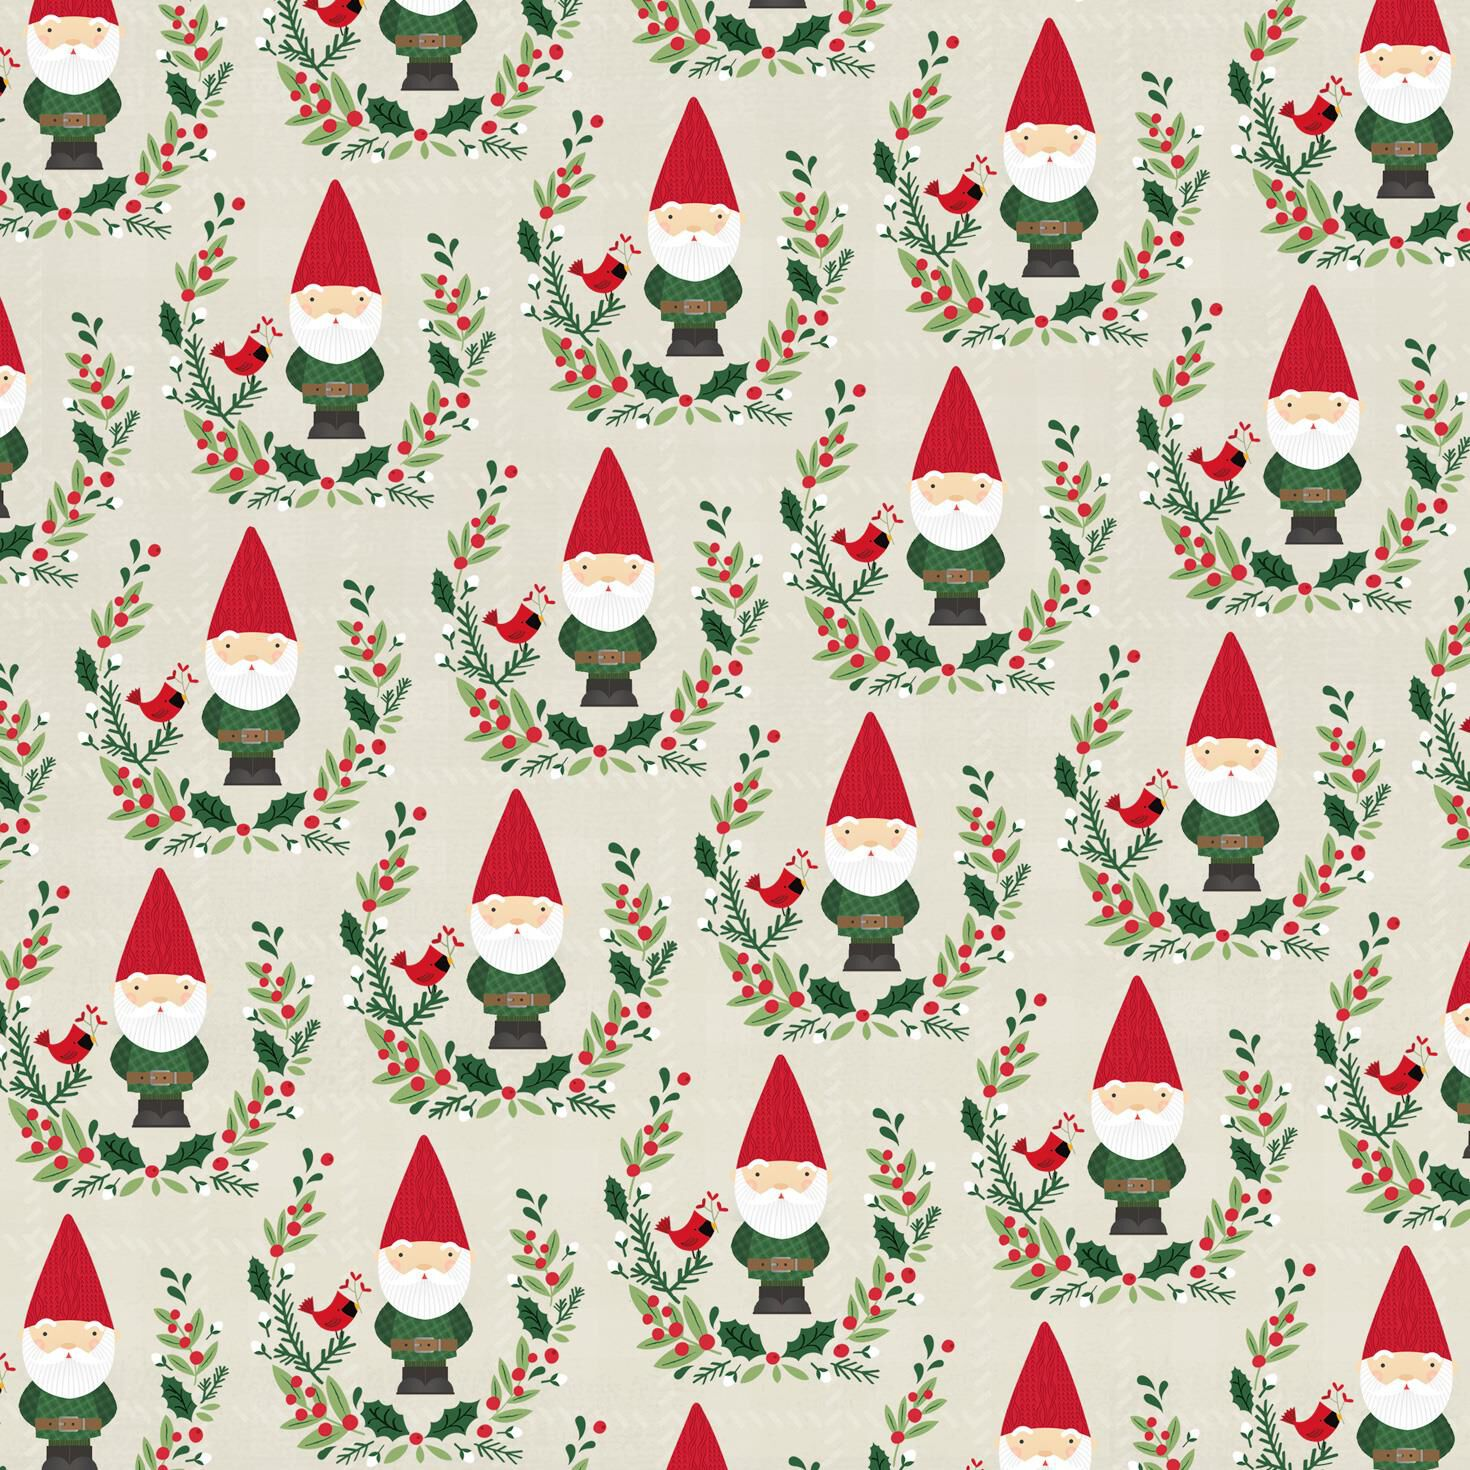 gnomes jumbo christmas wrapping paper roll 100 sq ft wrapping paper hallmark - Cheap Christmas Wrapping Paper